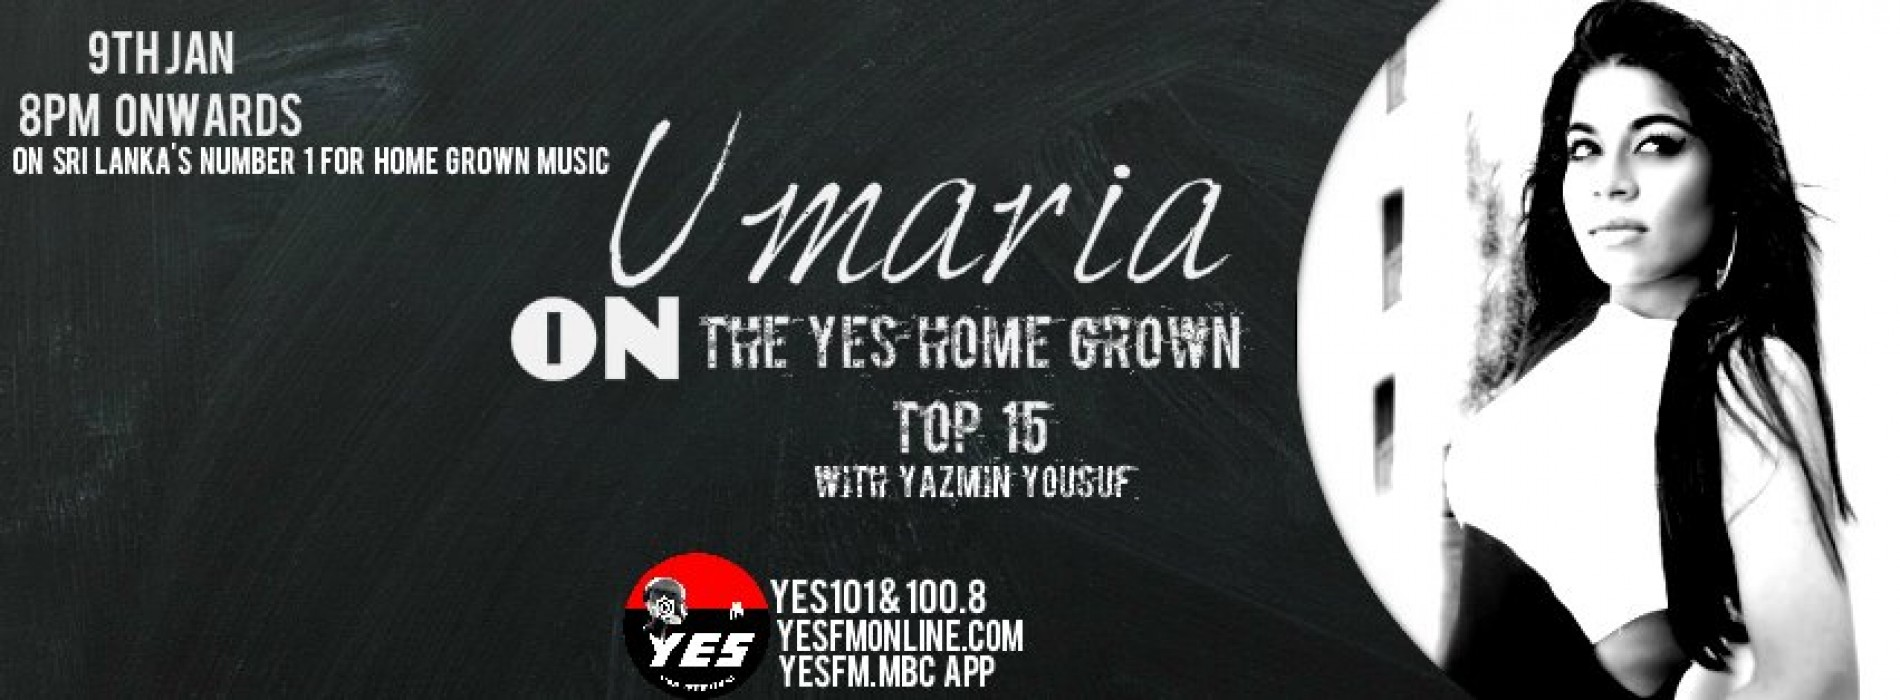 Umaria On The YES Home Grown Top 15